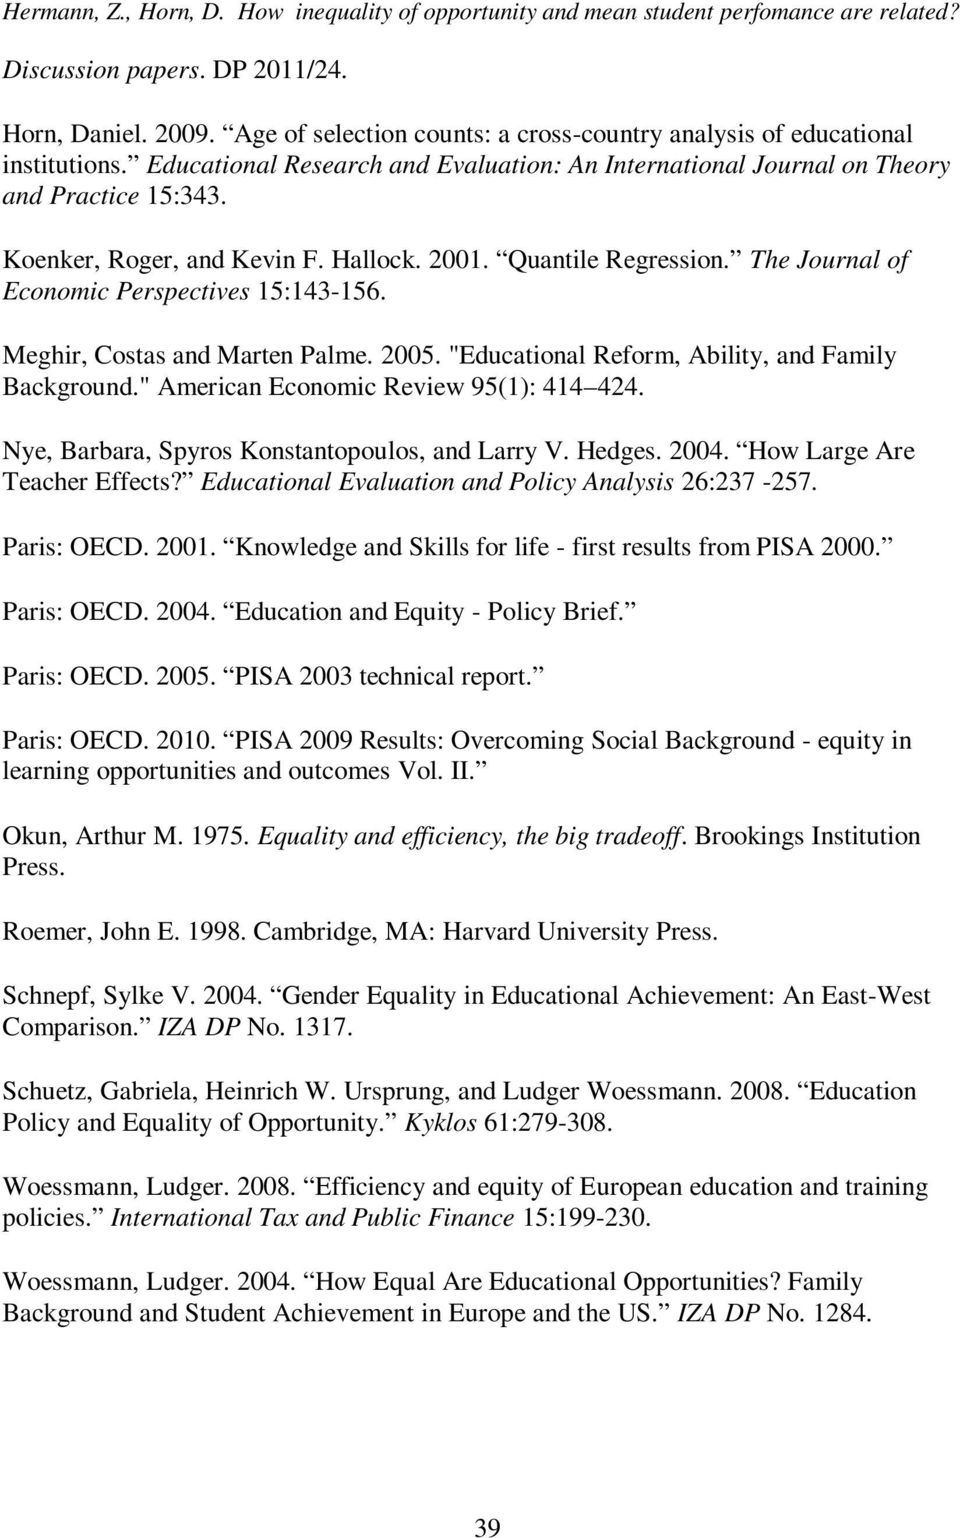 "Hallock. 2001. Quantile Regression. The Journal of Economic Perspectives 15:143-156. Meghir, Costas and Marten Palme. 2005. ""Educational Reform, Ability, and Family Background."